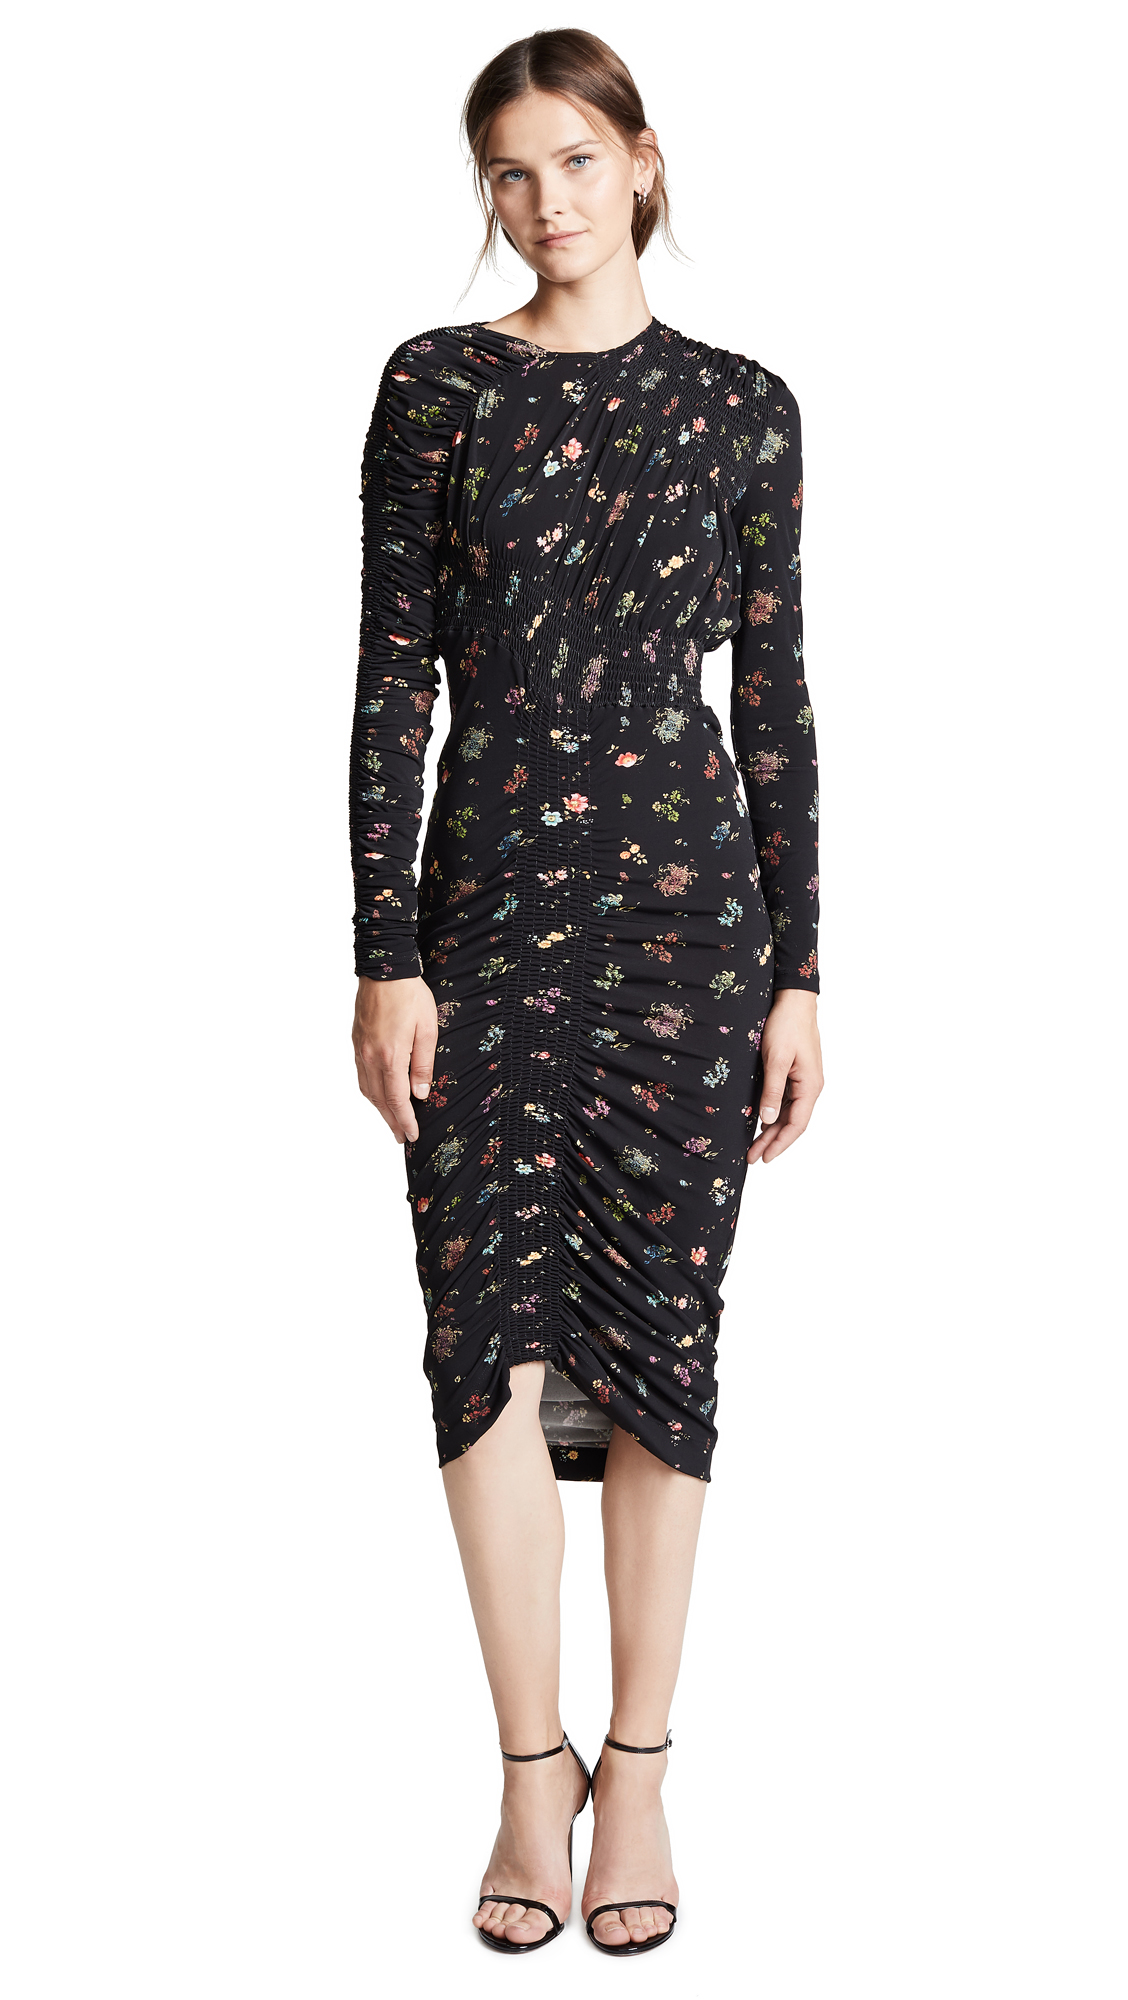 Preen By Thornton Bregazzi Rene Dress